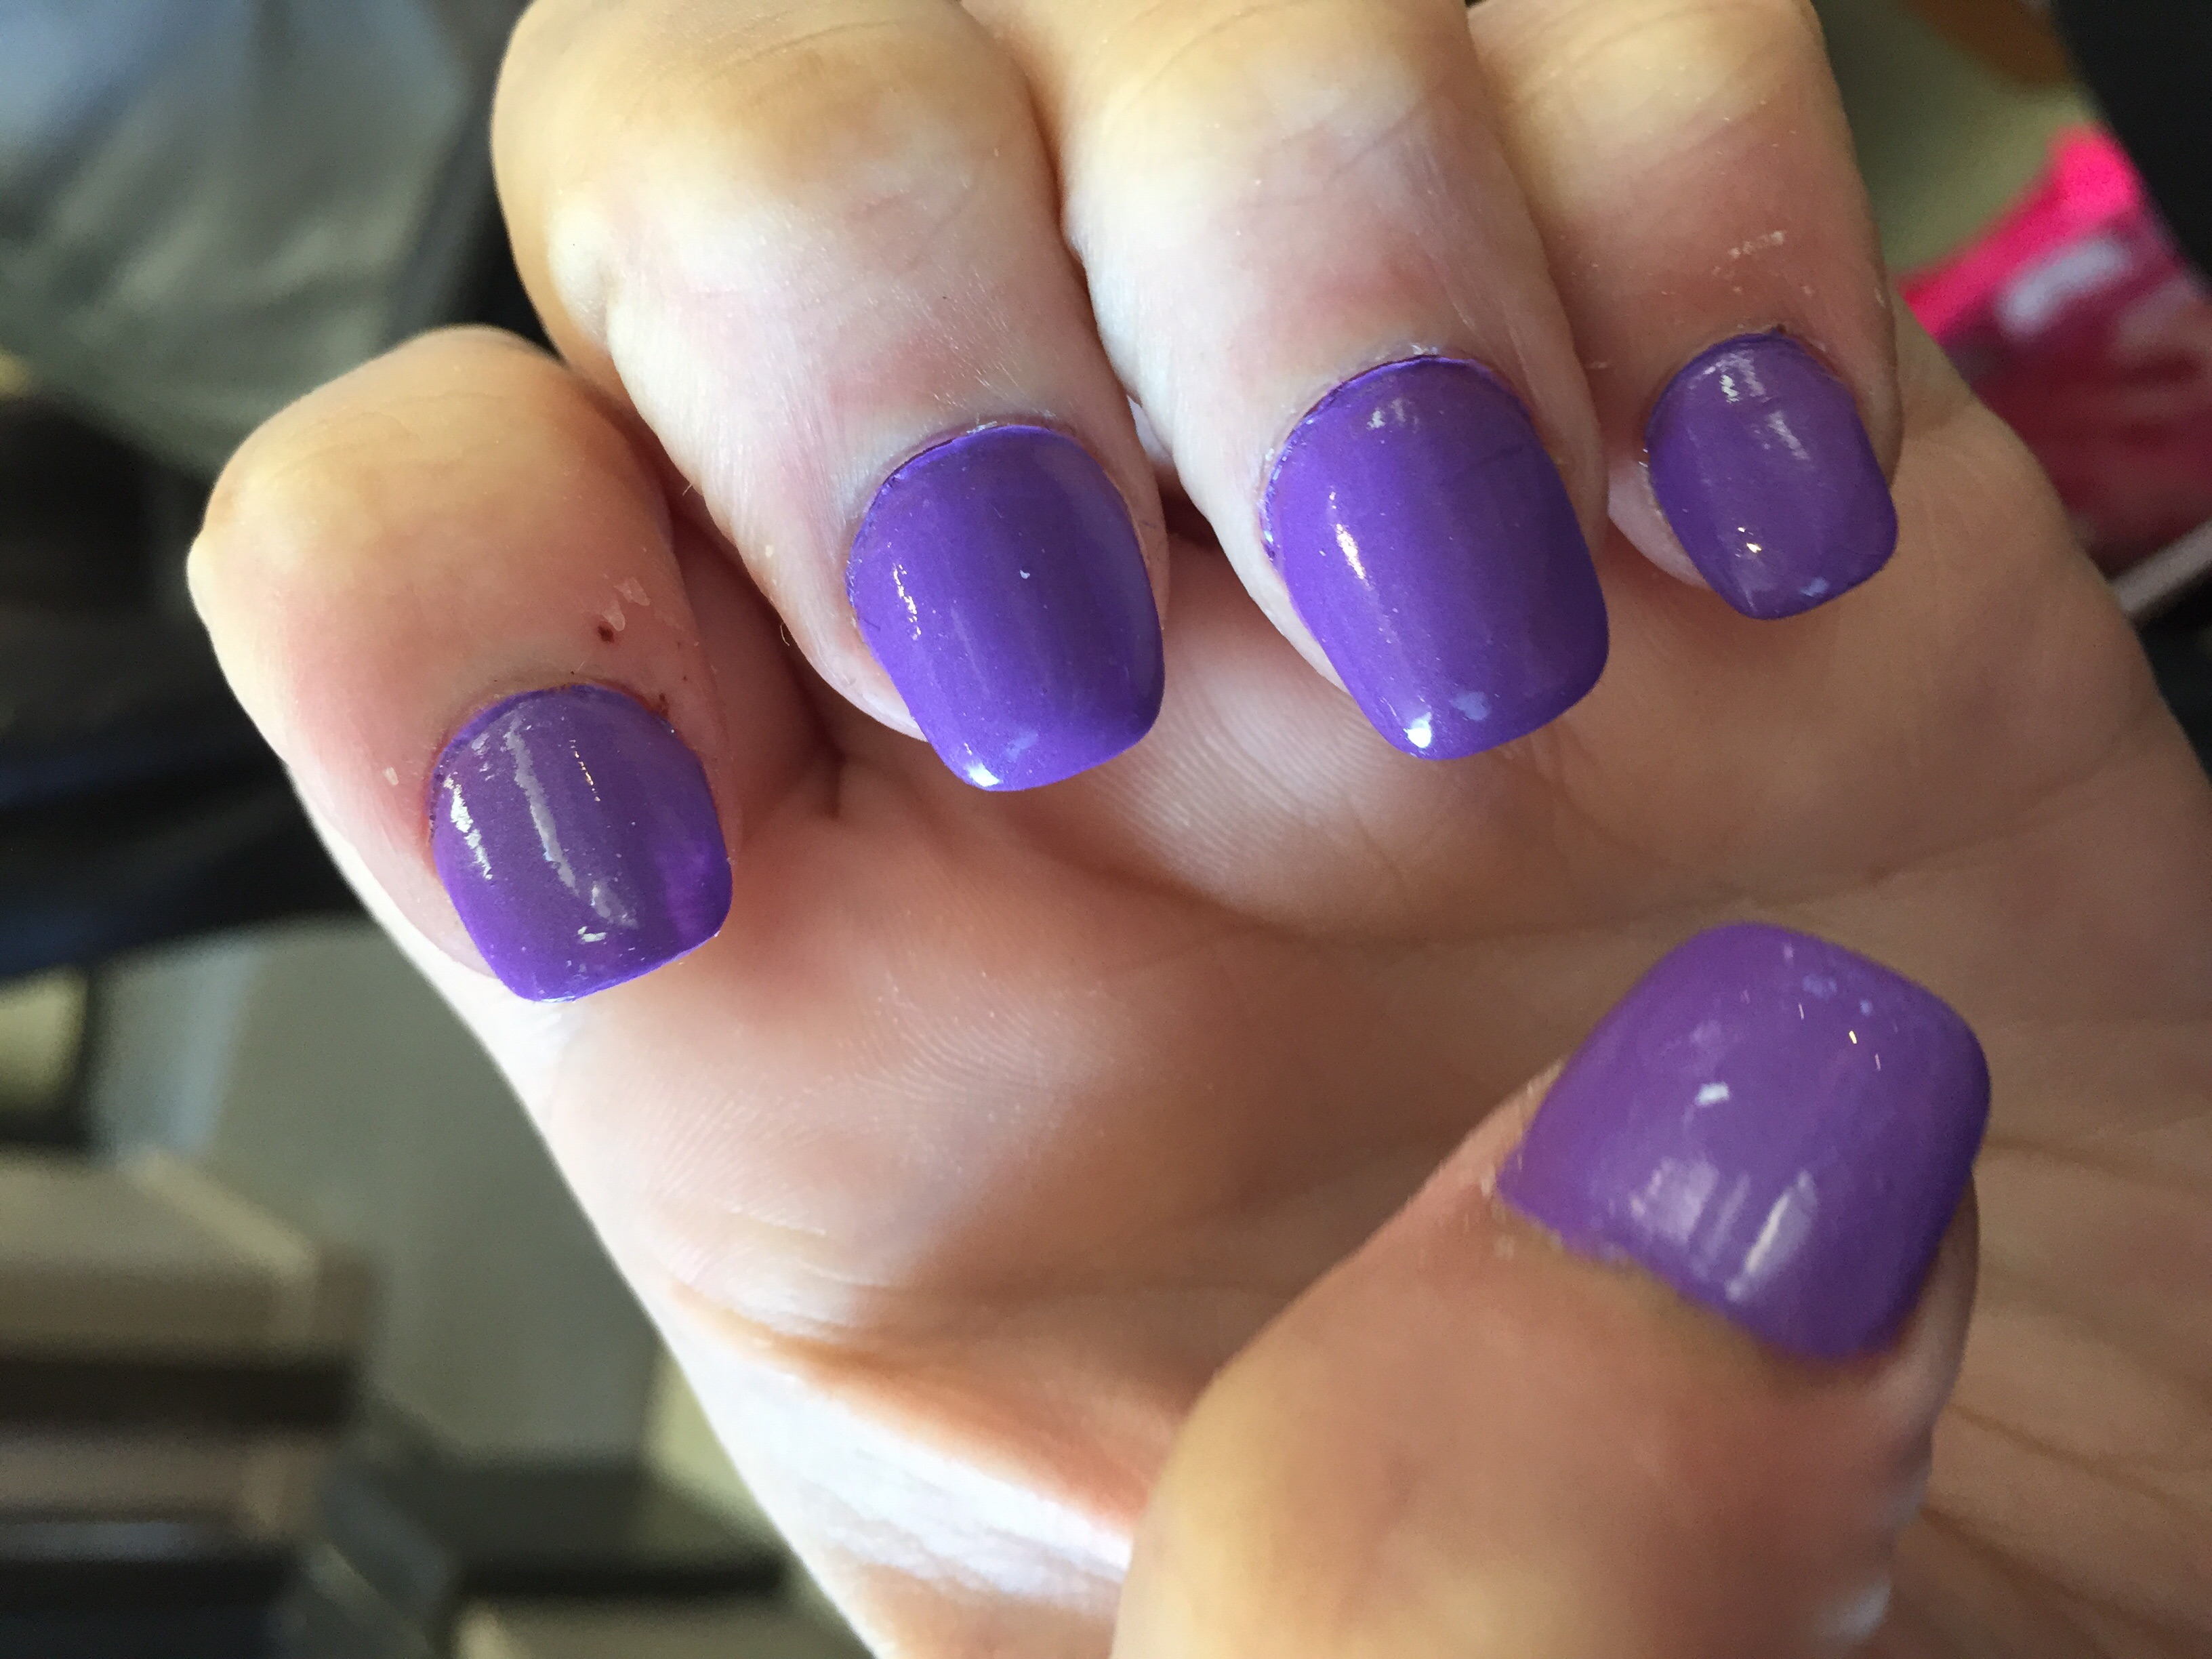 Glamour Nails 301 W Us Highway 20, Michigan City, IN 46360 - YP.com